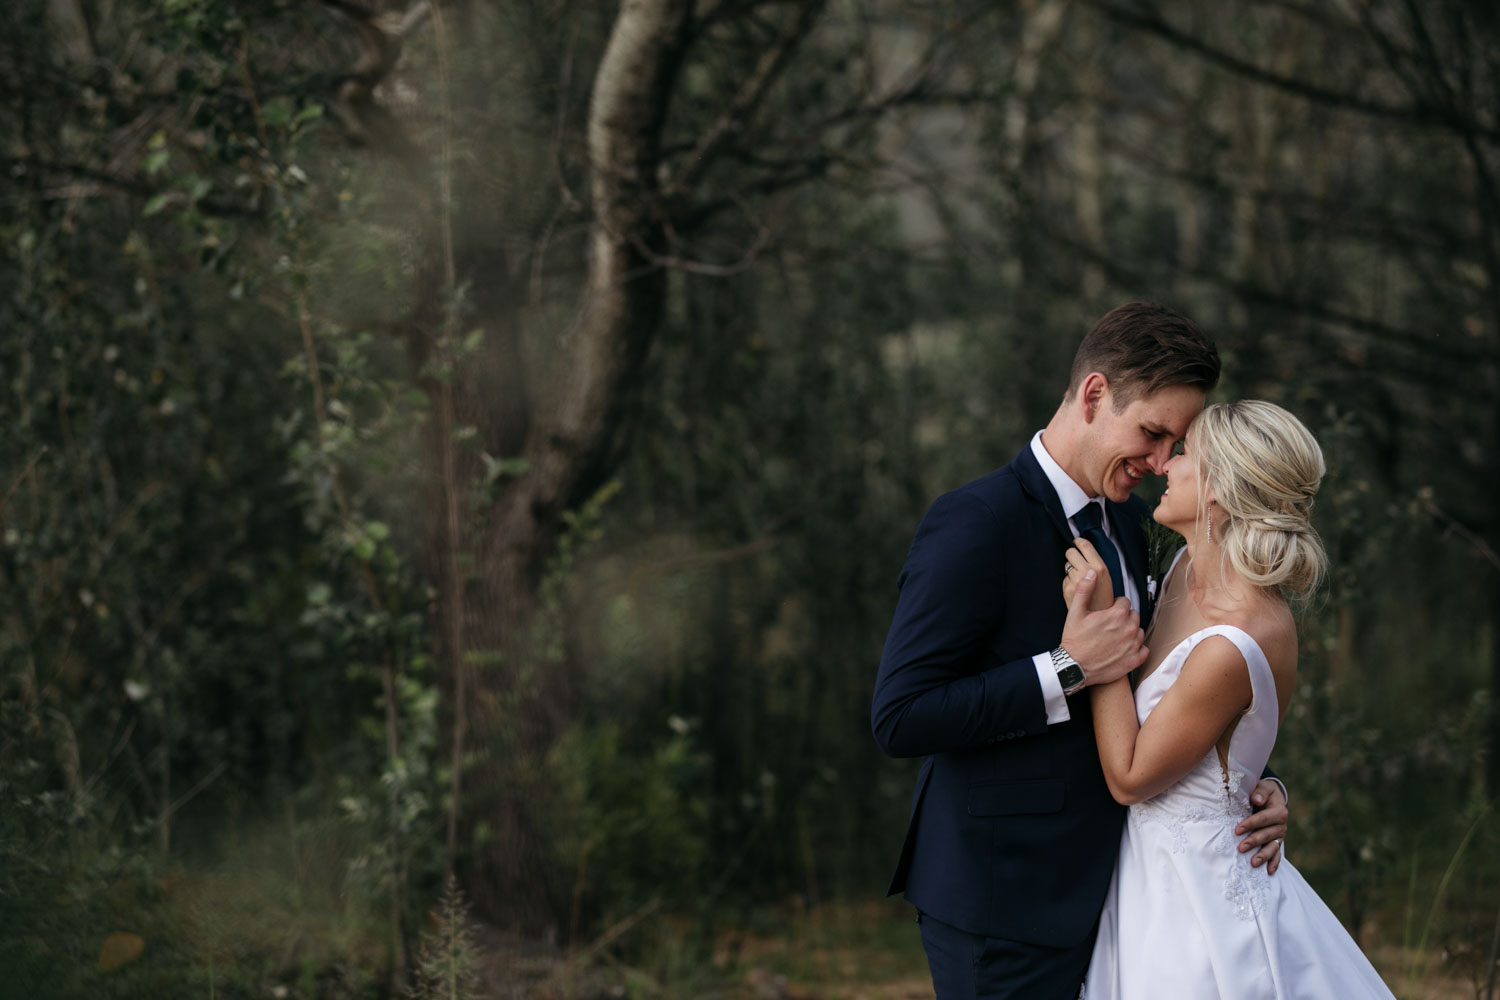 Candid Happy Wedding Photo Of Bride And Groom In Clarens Forest At St Fort Wedding Venue